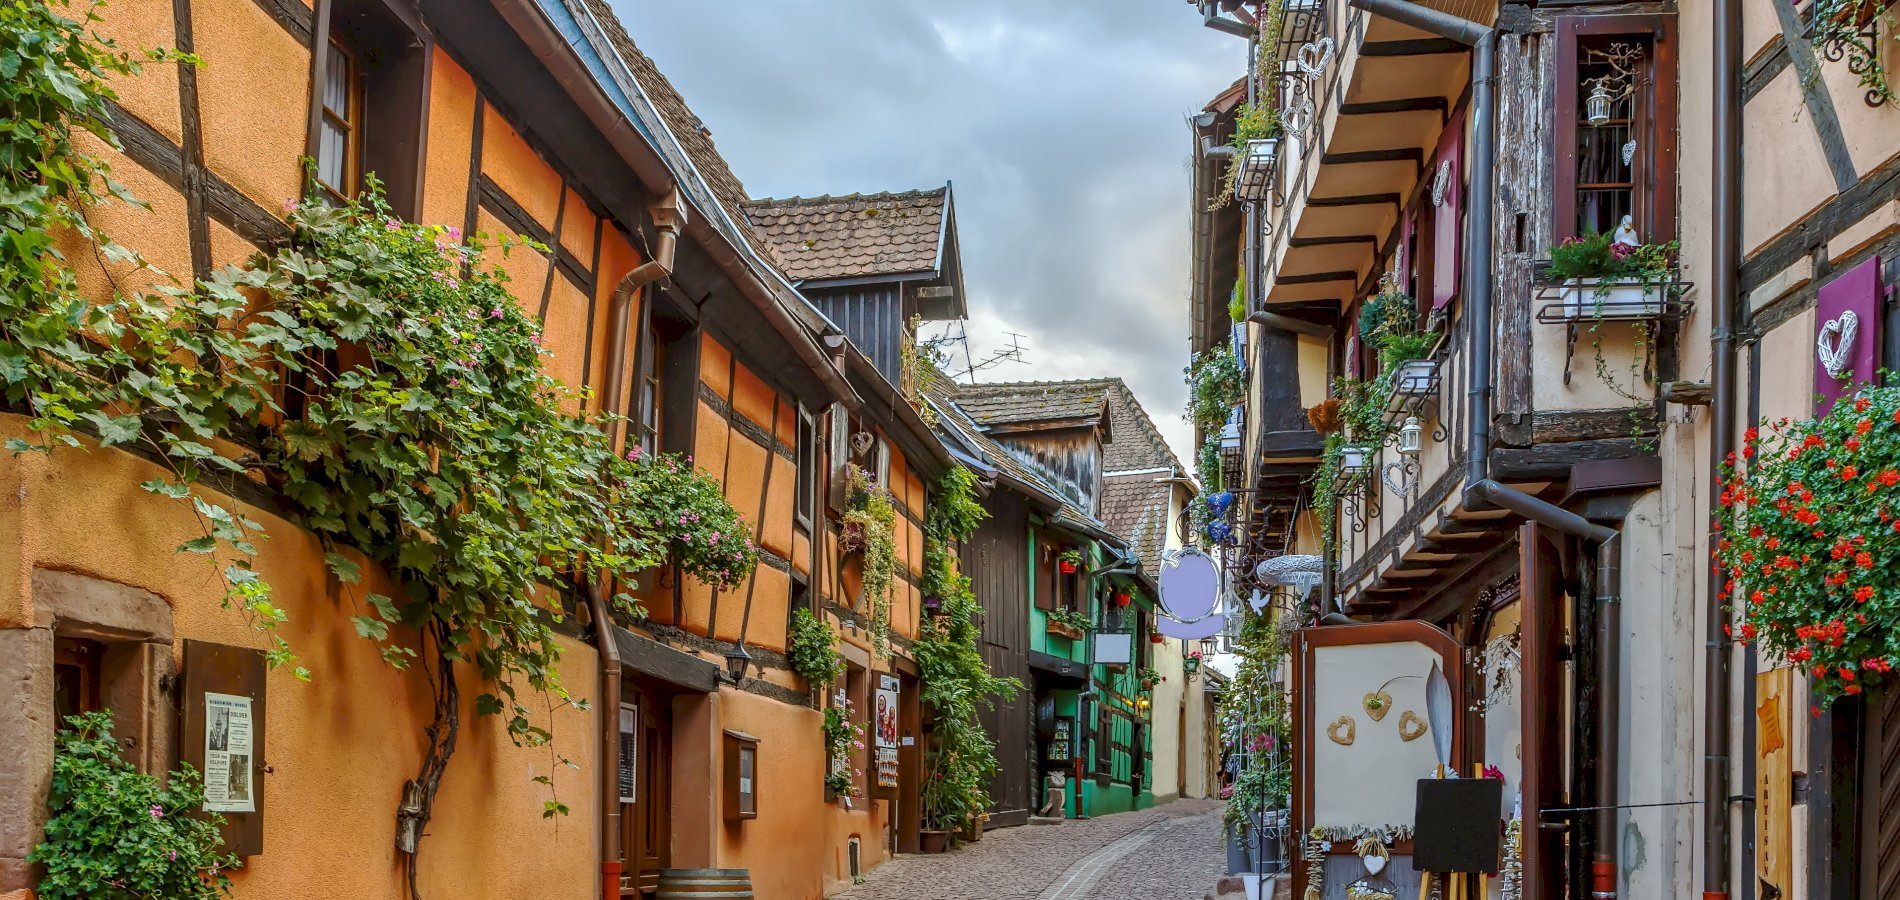 Ophorus Tours - 5 Days Alsace Private Travel Package - 5* Hotel Option